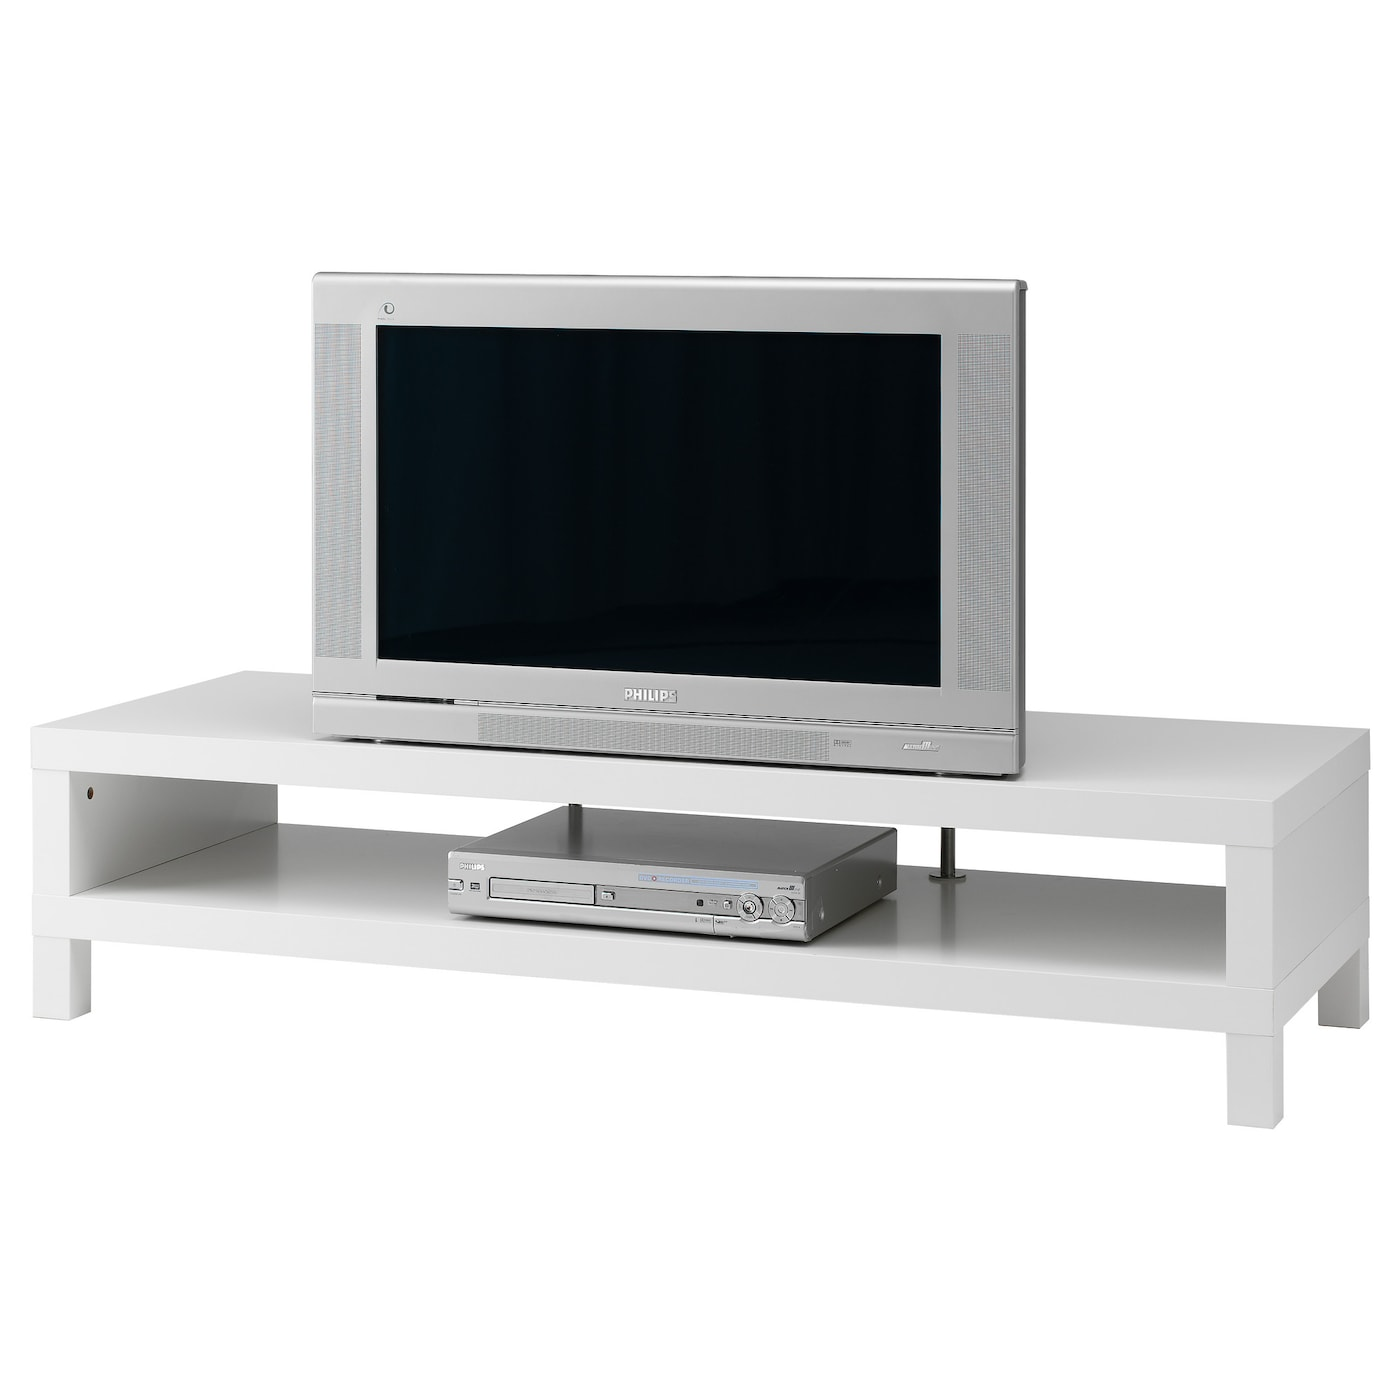 Tv Tables Tv Benches Ikea # Meuble Tv Fjallbo